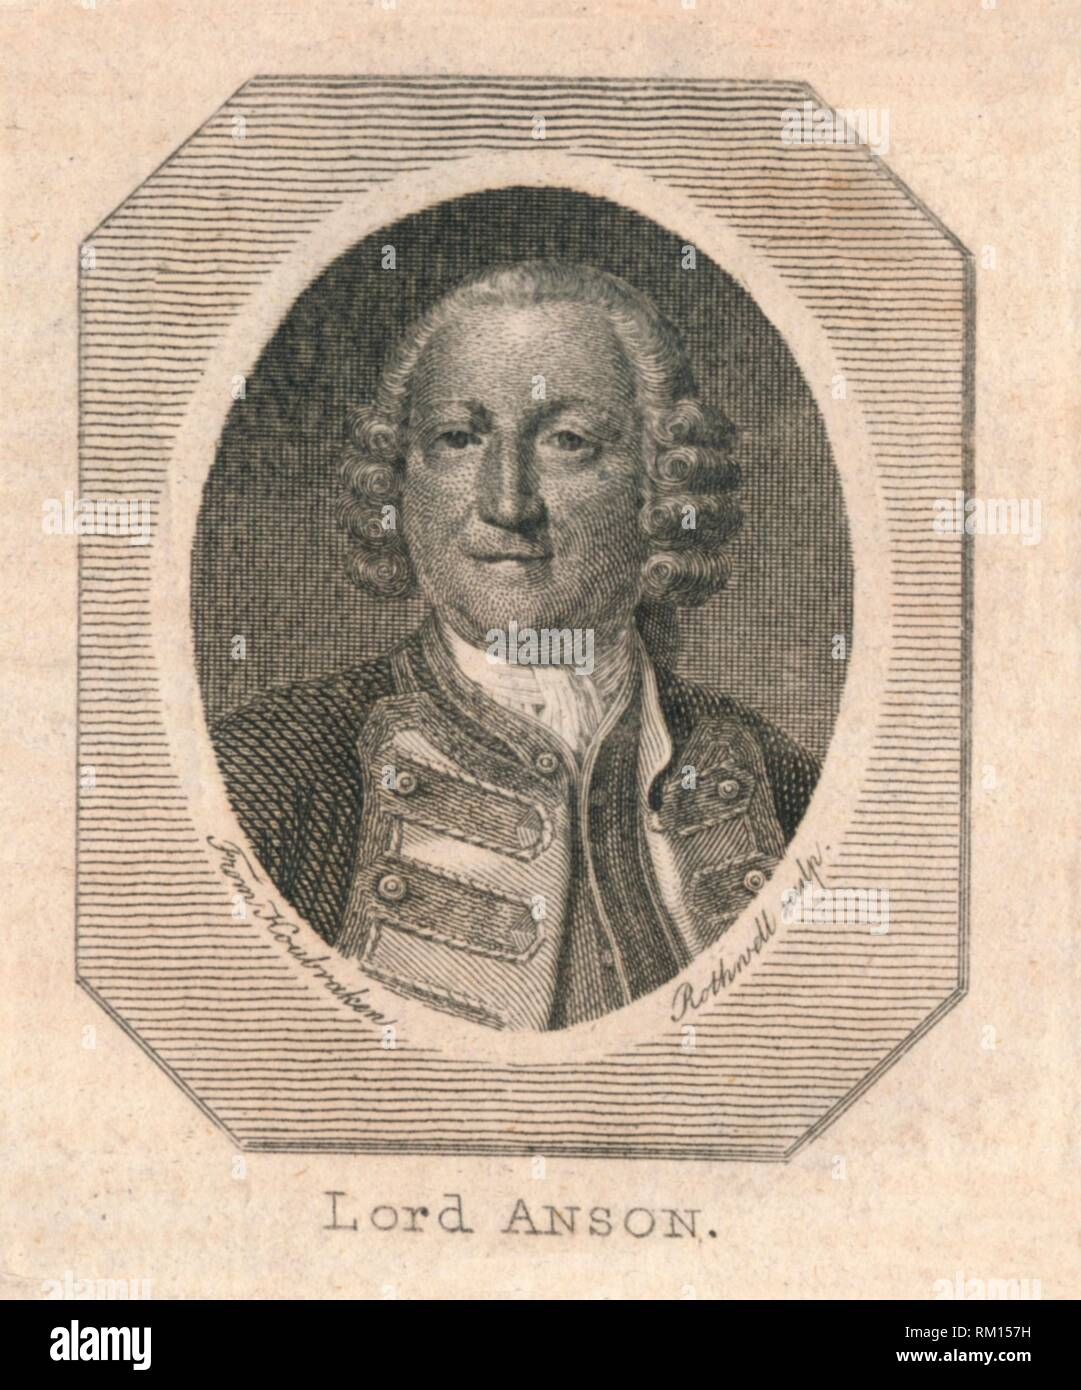 'Lord Anson', c1800. Portrait of English naval commander George Anson, Baron Anson (1697-1762). Anson commanded a Royal Navy squadron of 6 ships sent to attack Spanish interests in South America at the outset of the War of Austrian Succession in September 1740. The expedition failed to achieve its military objective, 5 of the ships were lost and many of the crews succumbed to shipwreck and scurvy. Anson and the survivors aboard the remaining ship, the 'Centurion', arrived back in England in June 1744, having circumnavigated the globe. He was created a Baron after his victory over the French at - Stock Image